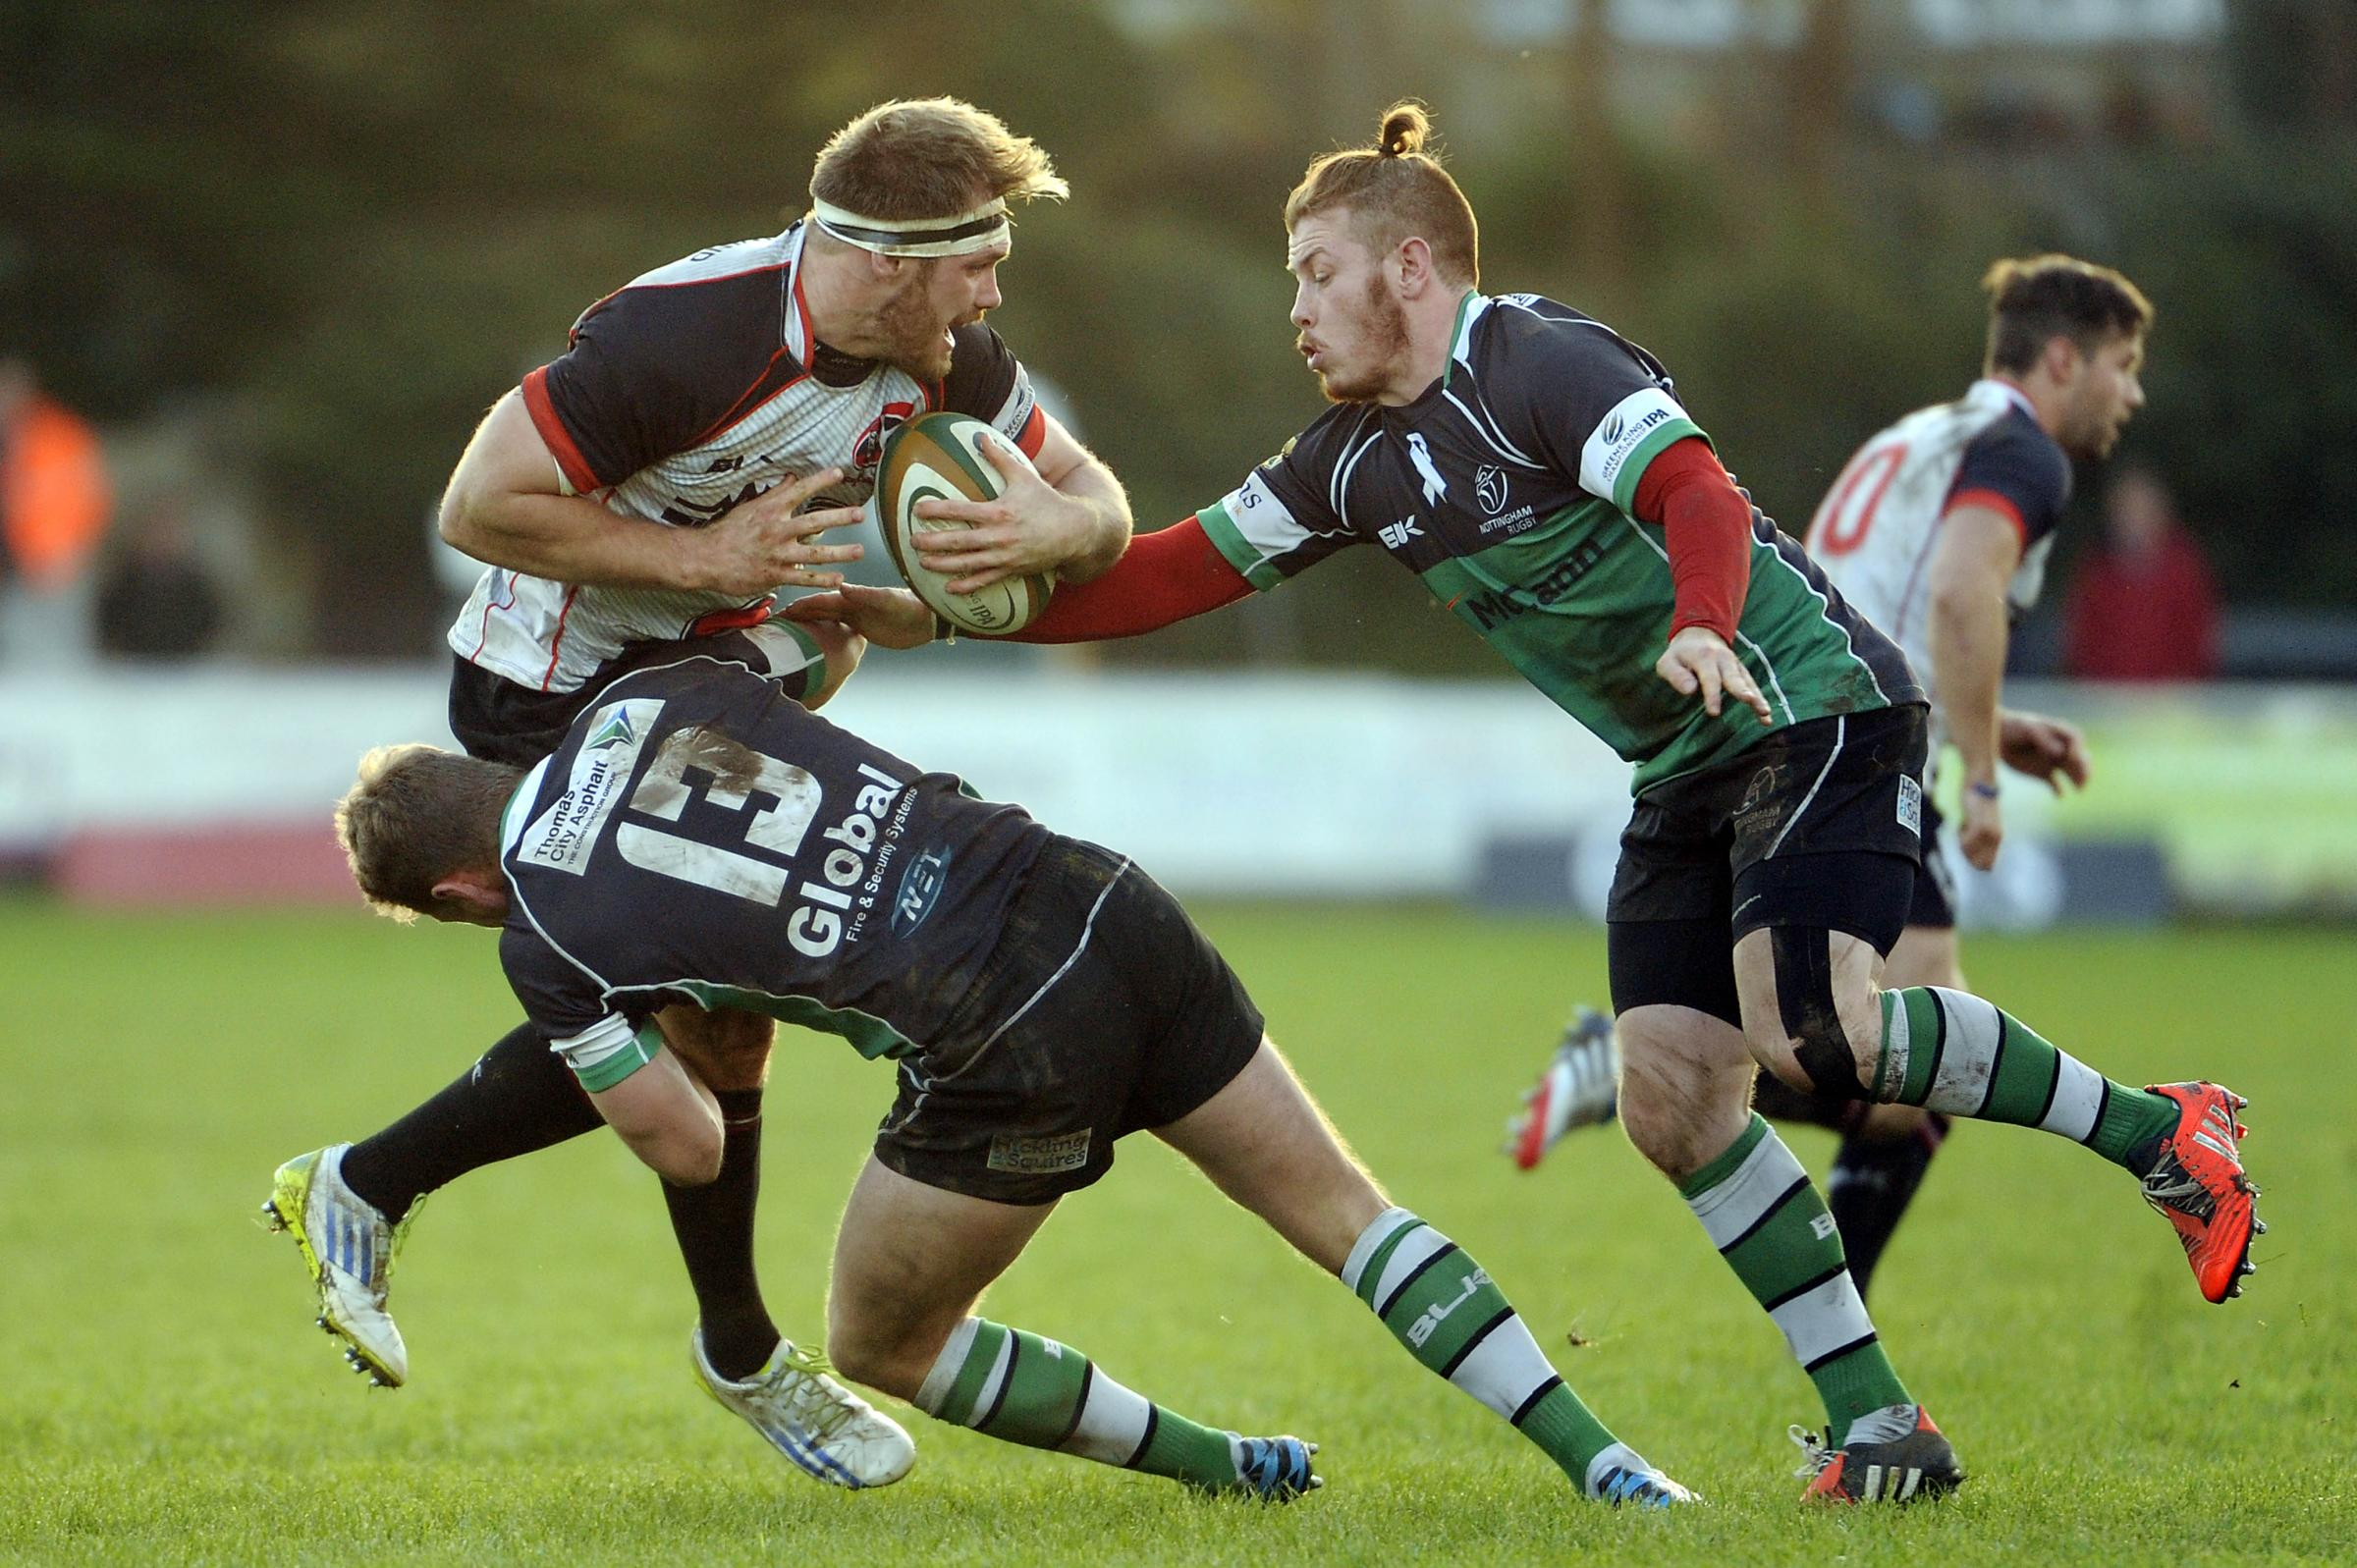 Nottingham will be in the same group as the Cornish Pirates